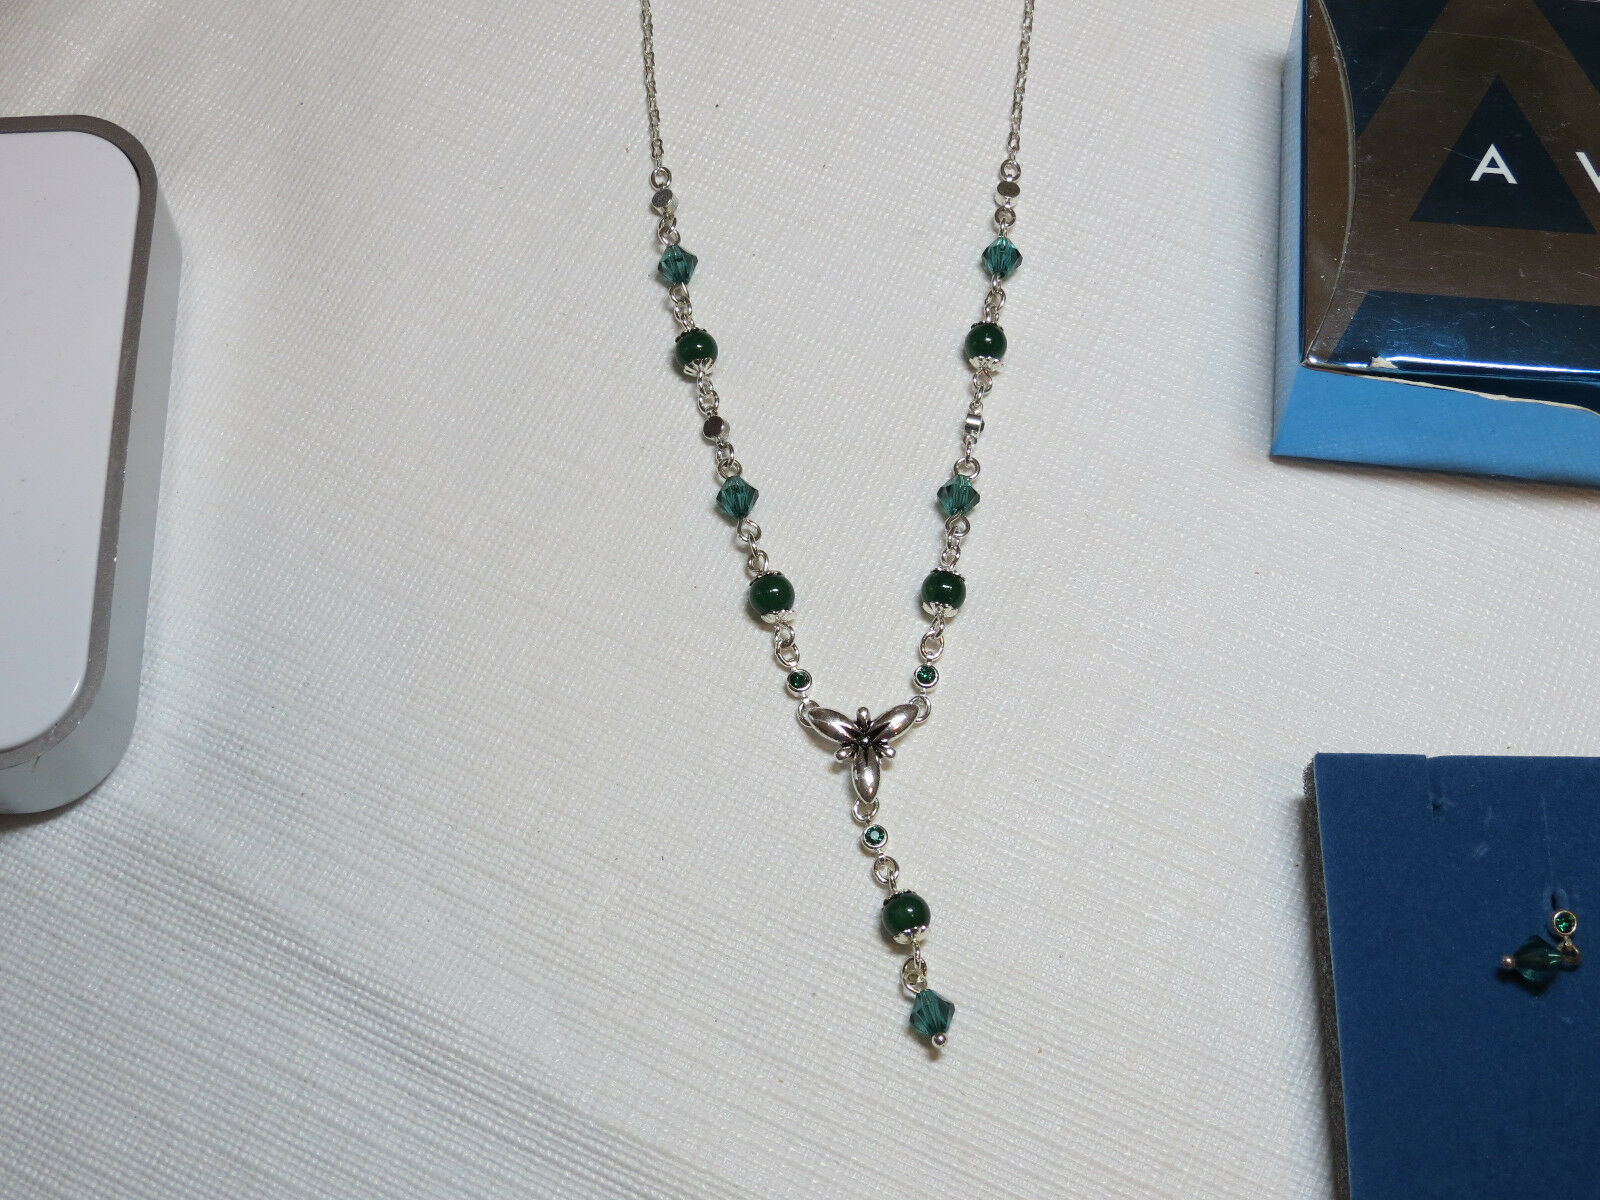 New Avon Shades of Grey Turquoise /& Black Beaded Necklace /& Earring Gift Set